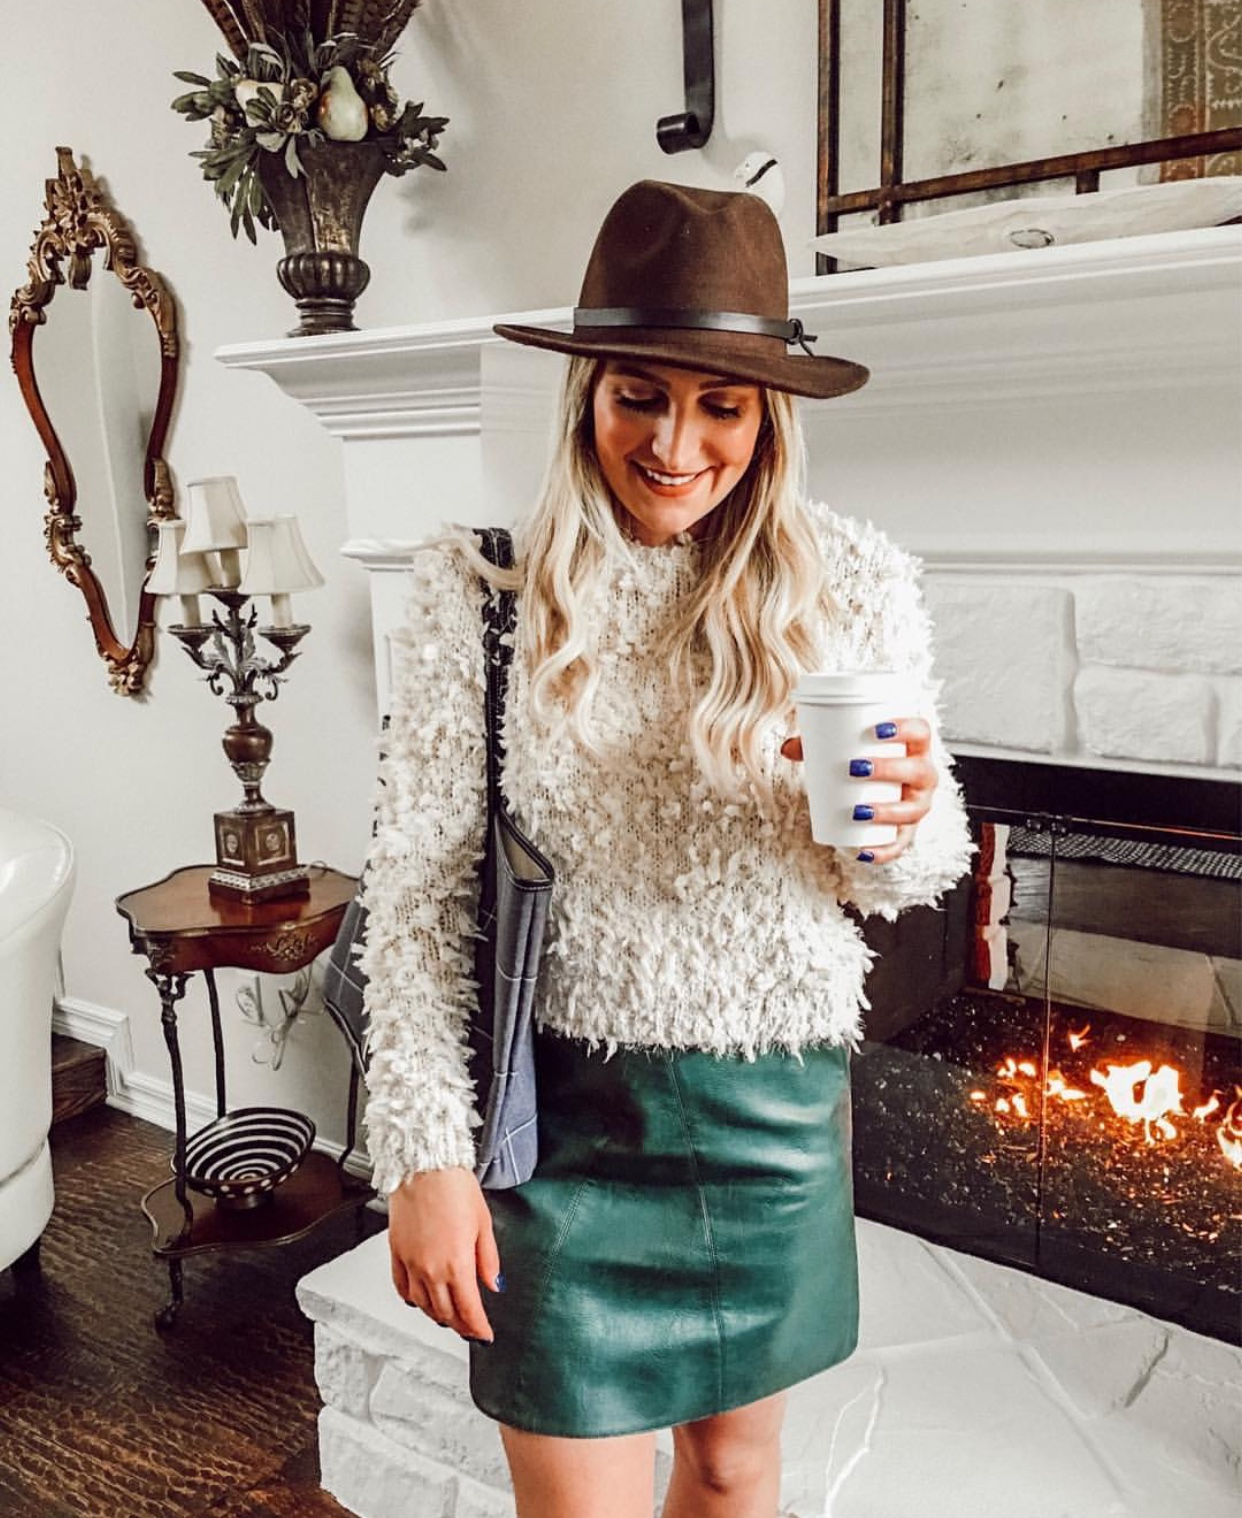 Fuzzy sweater | Audrey Madison Stowe a fashion and lifestyle blogger